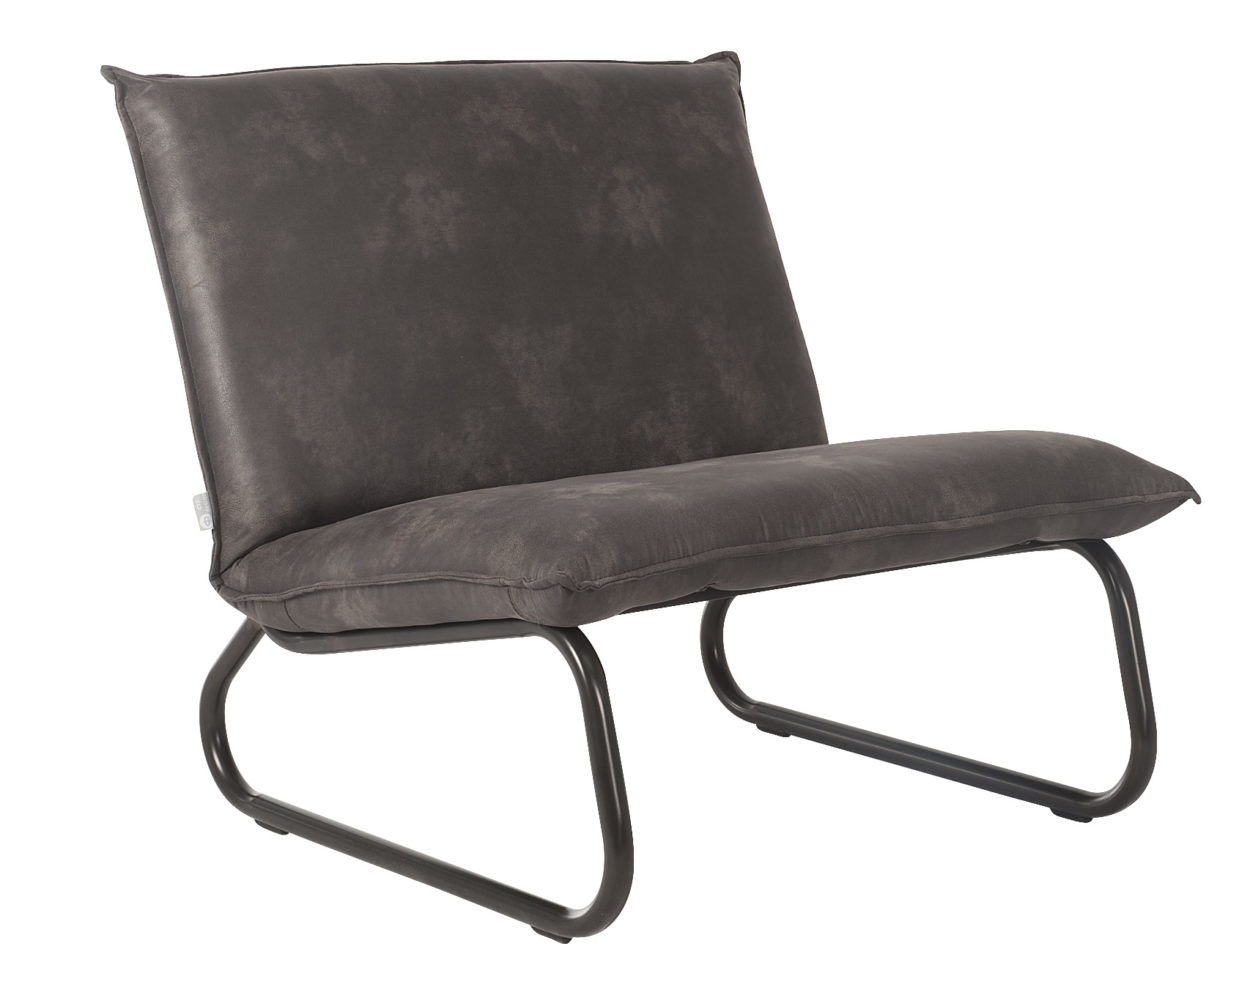 D-Bohdi Yarra Fauteuil Recycled Leather Grey